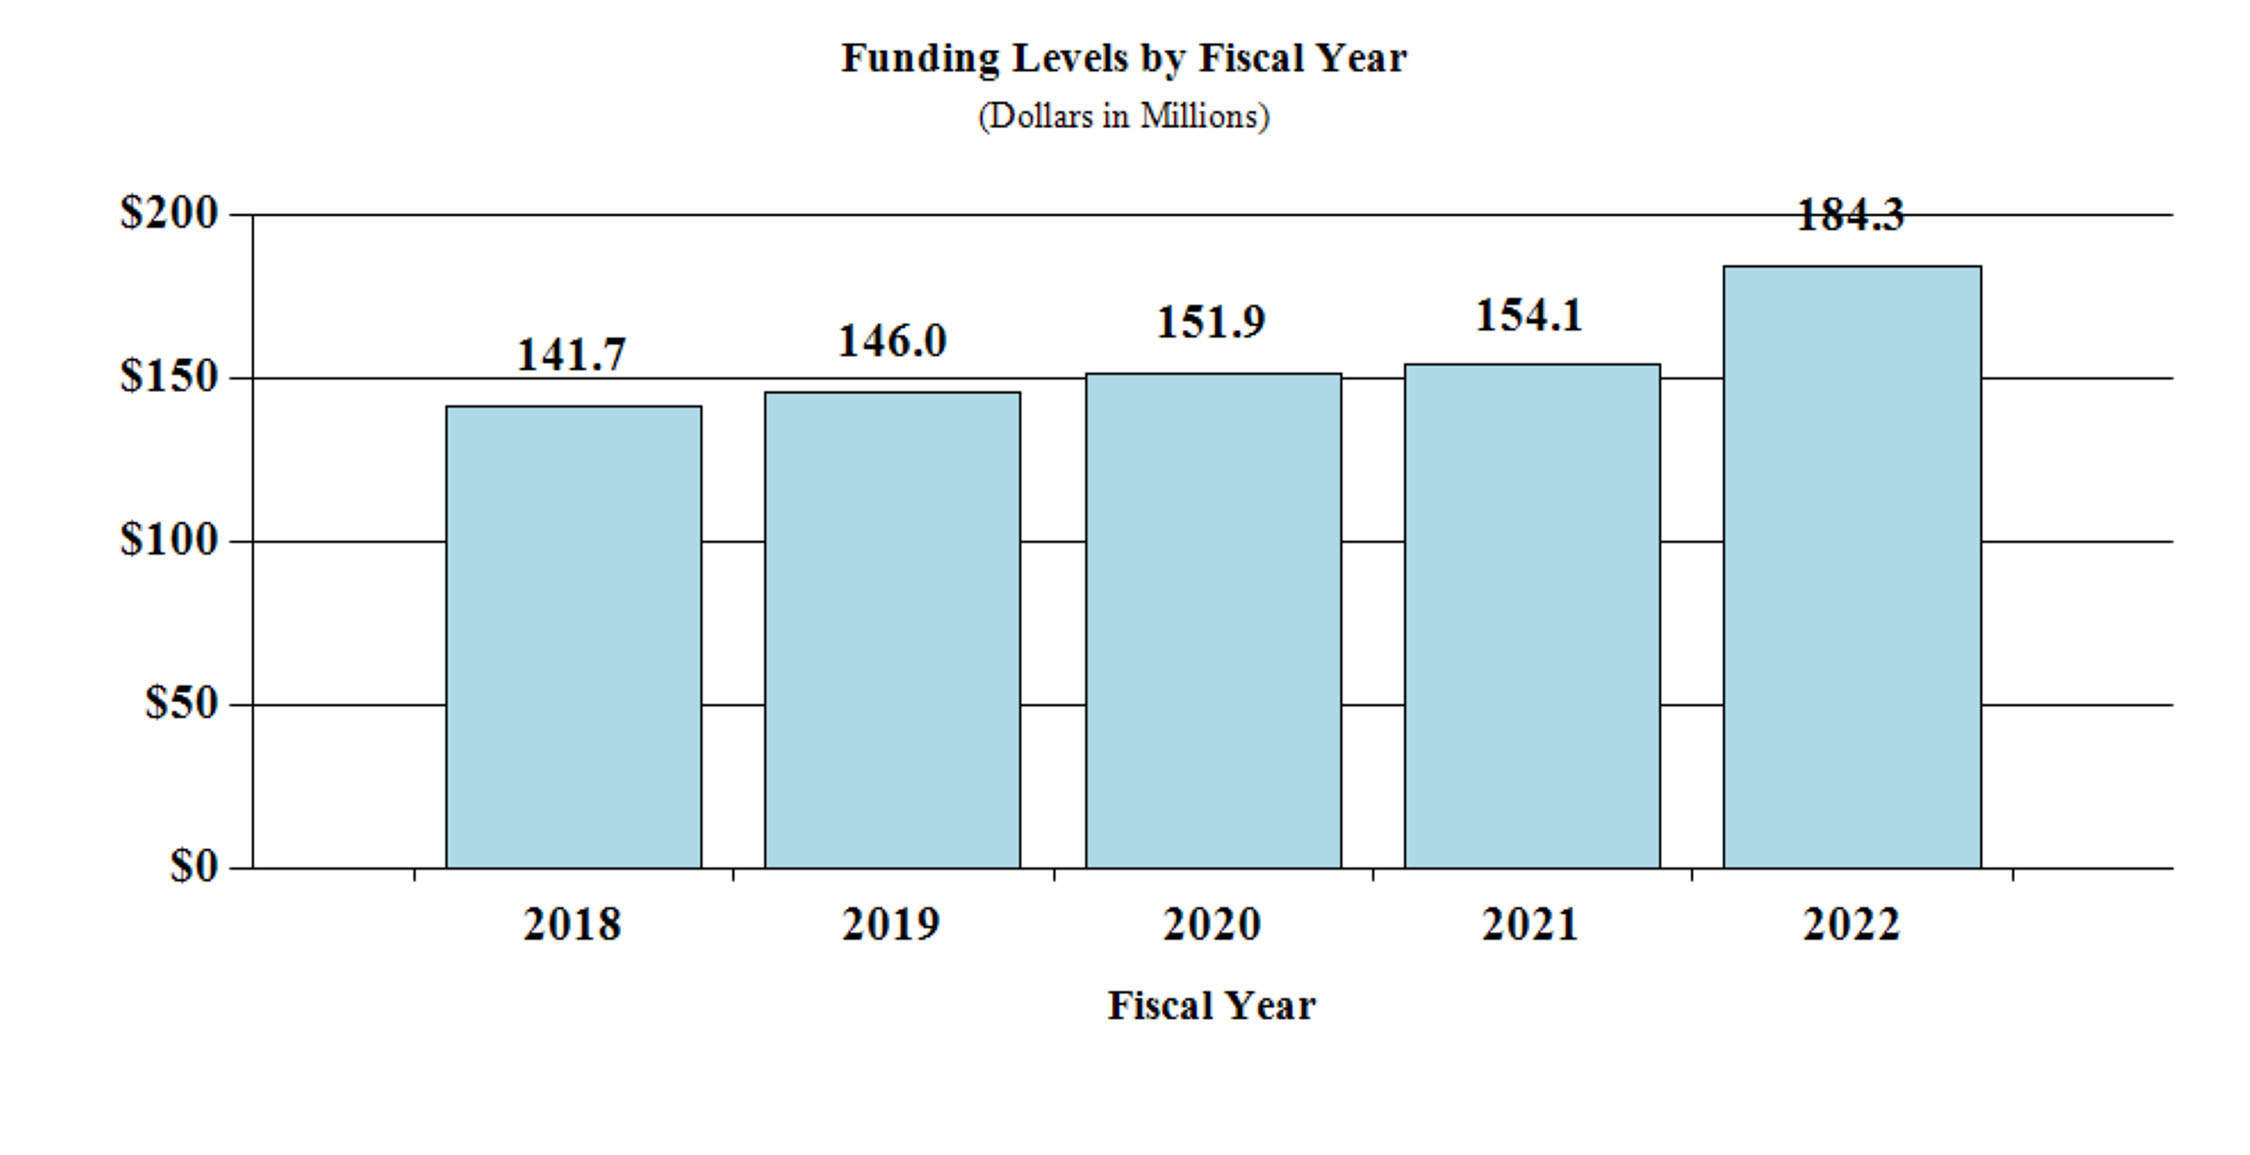 2022 Fund Level By FY